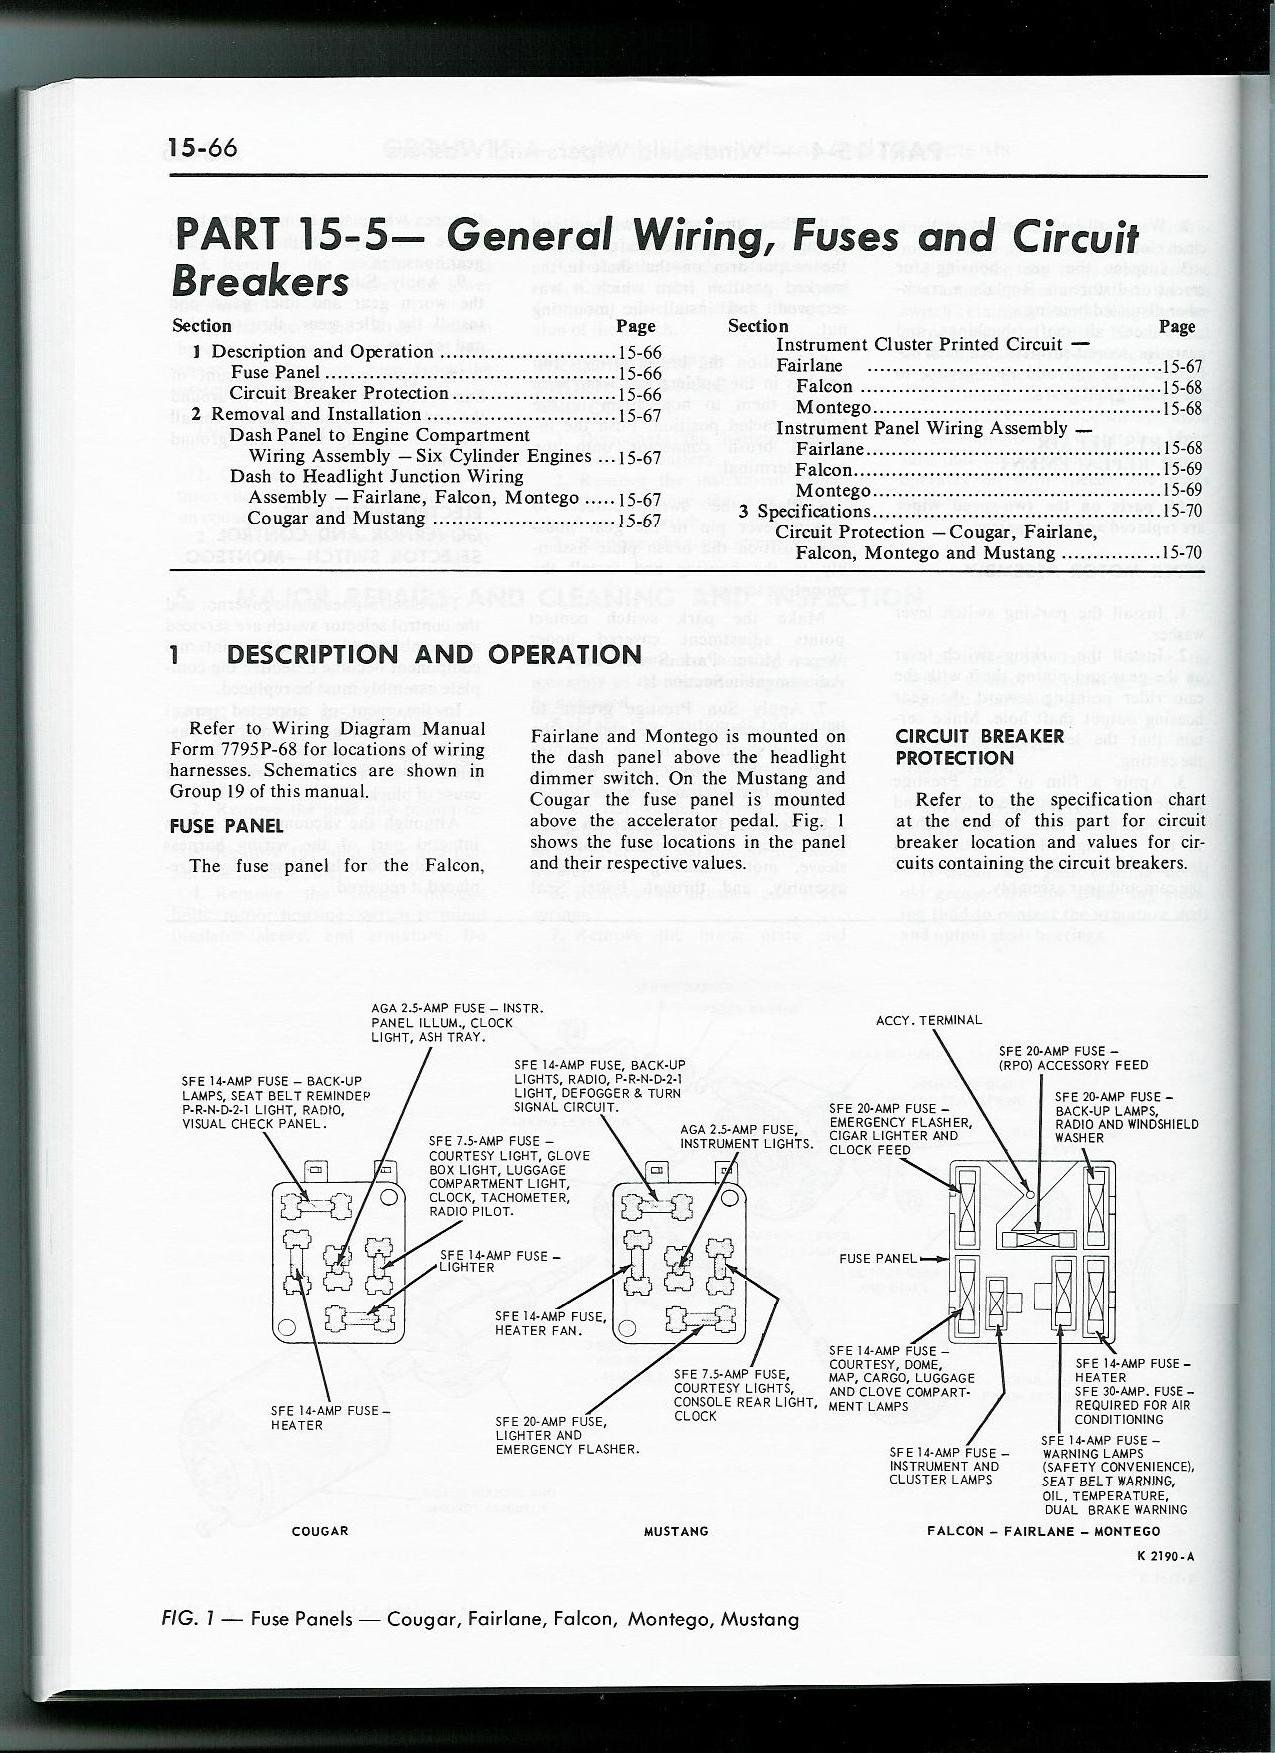 70 Mustang Fuse Box Wiring Diagram Block And Schematic Diagrams 1969 Pdf 1964 Comet U2022 Rh Arcomics Co 1993